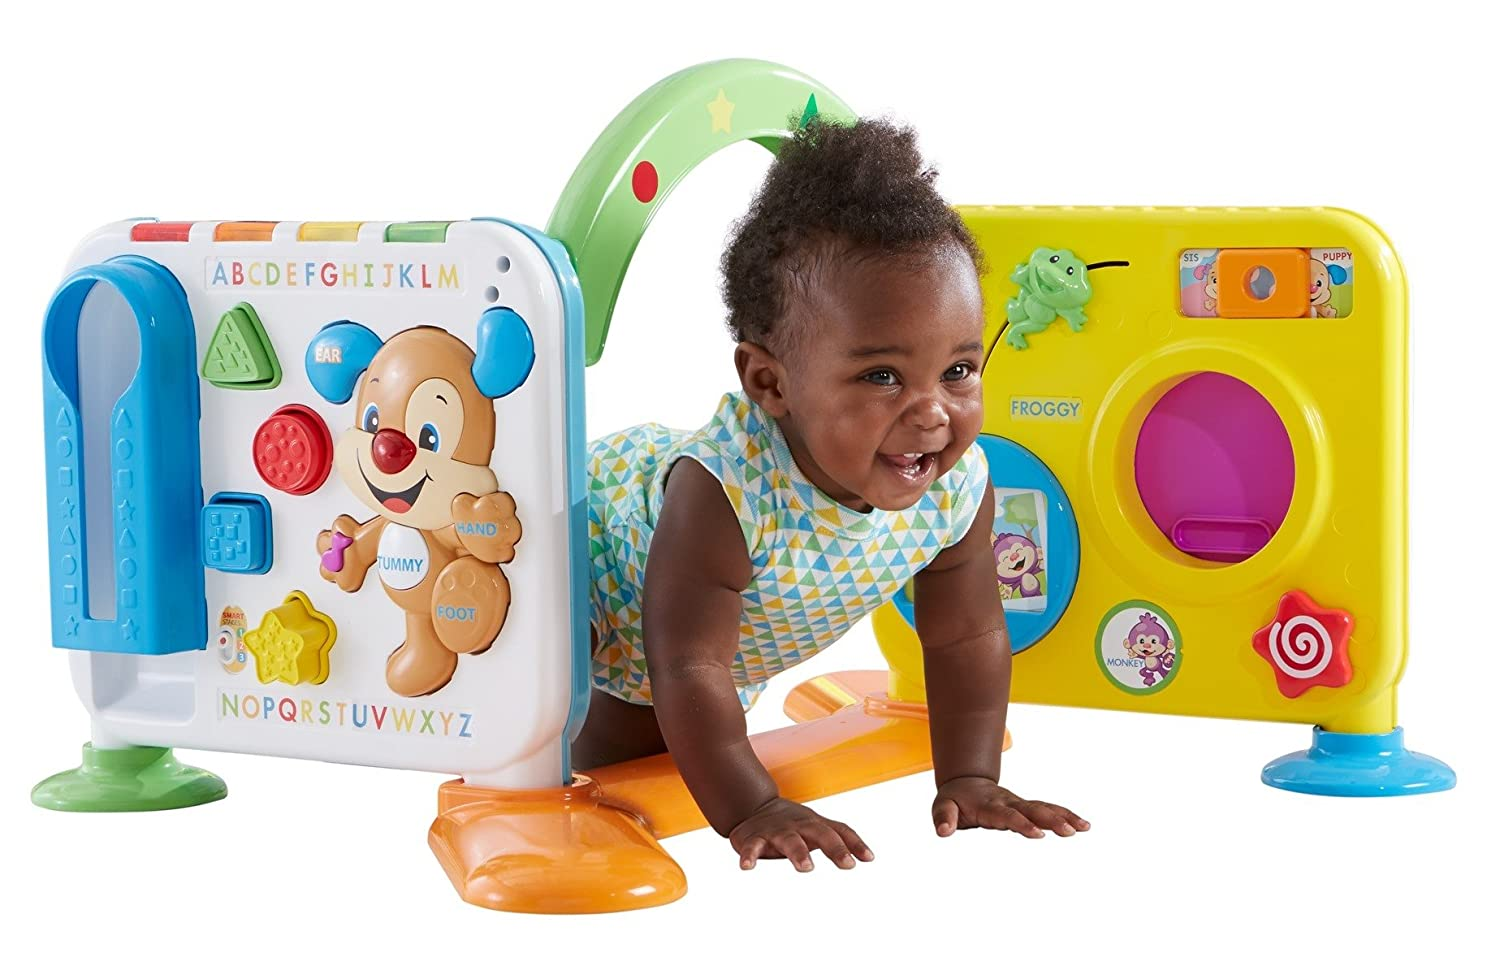 baby activity center toddler crawl fisher price interactive learning toy gift 710165685546 ebay. Black Bedroom Furniture Sets. Home Design Ideas